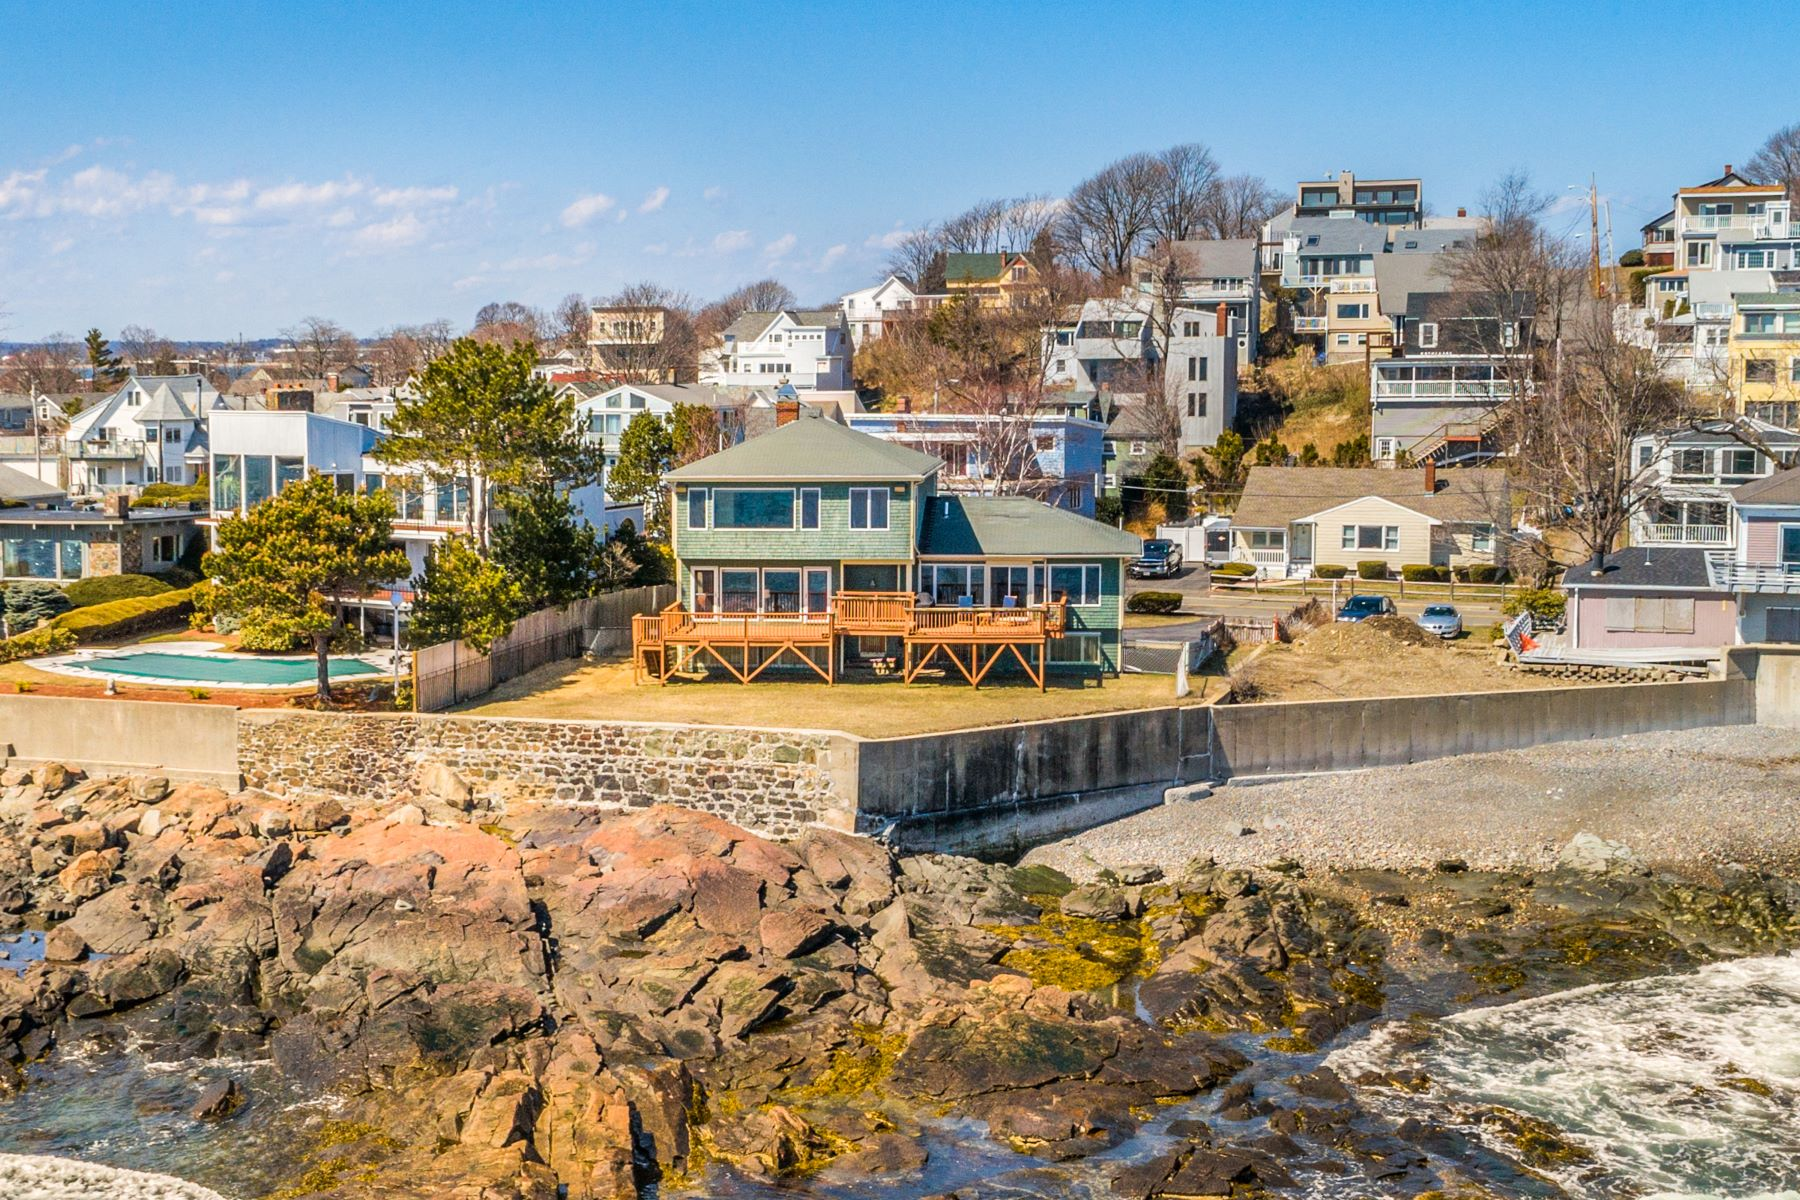 Single Family Home for Active at Direct Oceanfront Home - Amazing Views of Boston and South Shore 135 Bass Point Road Nahant, Massachusetts 01908 United States